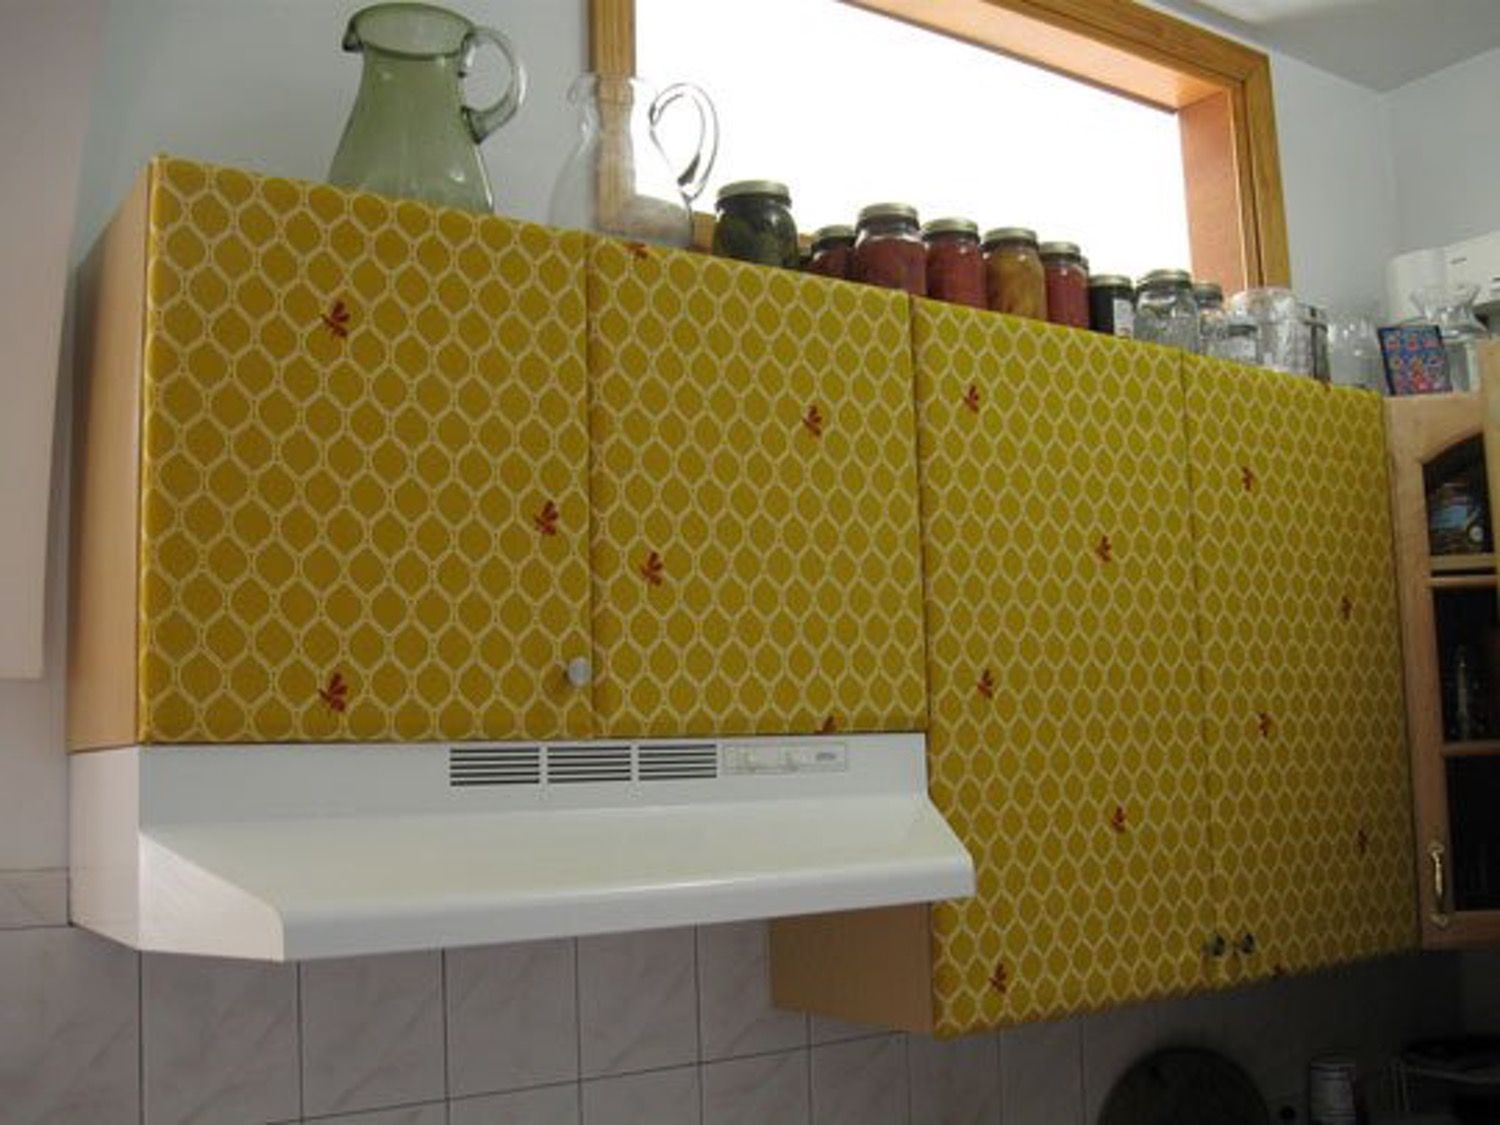 How To Cover The Kitchen Cabinets In Fabric Contact Paper Kitchen Cabinets Countertop Makeover Kitchen Cabinets Cover